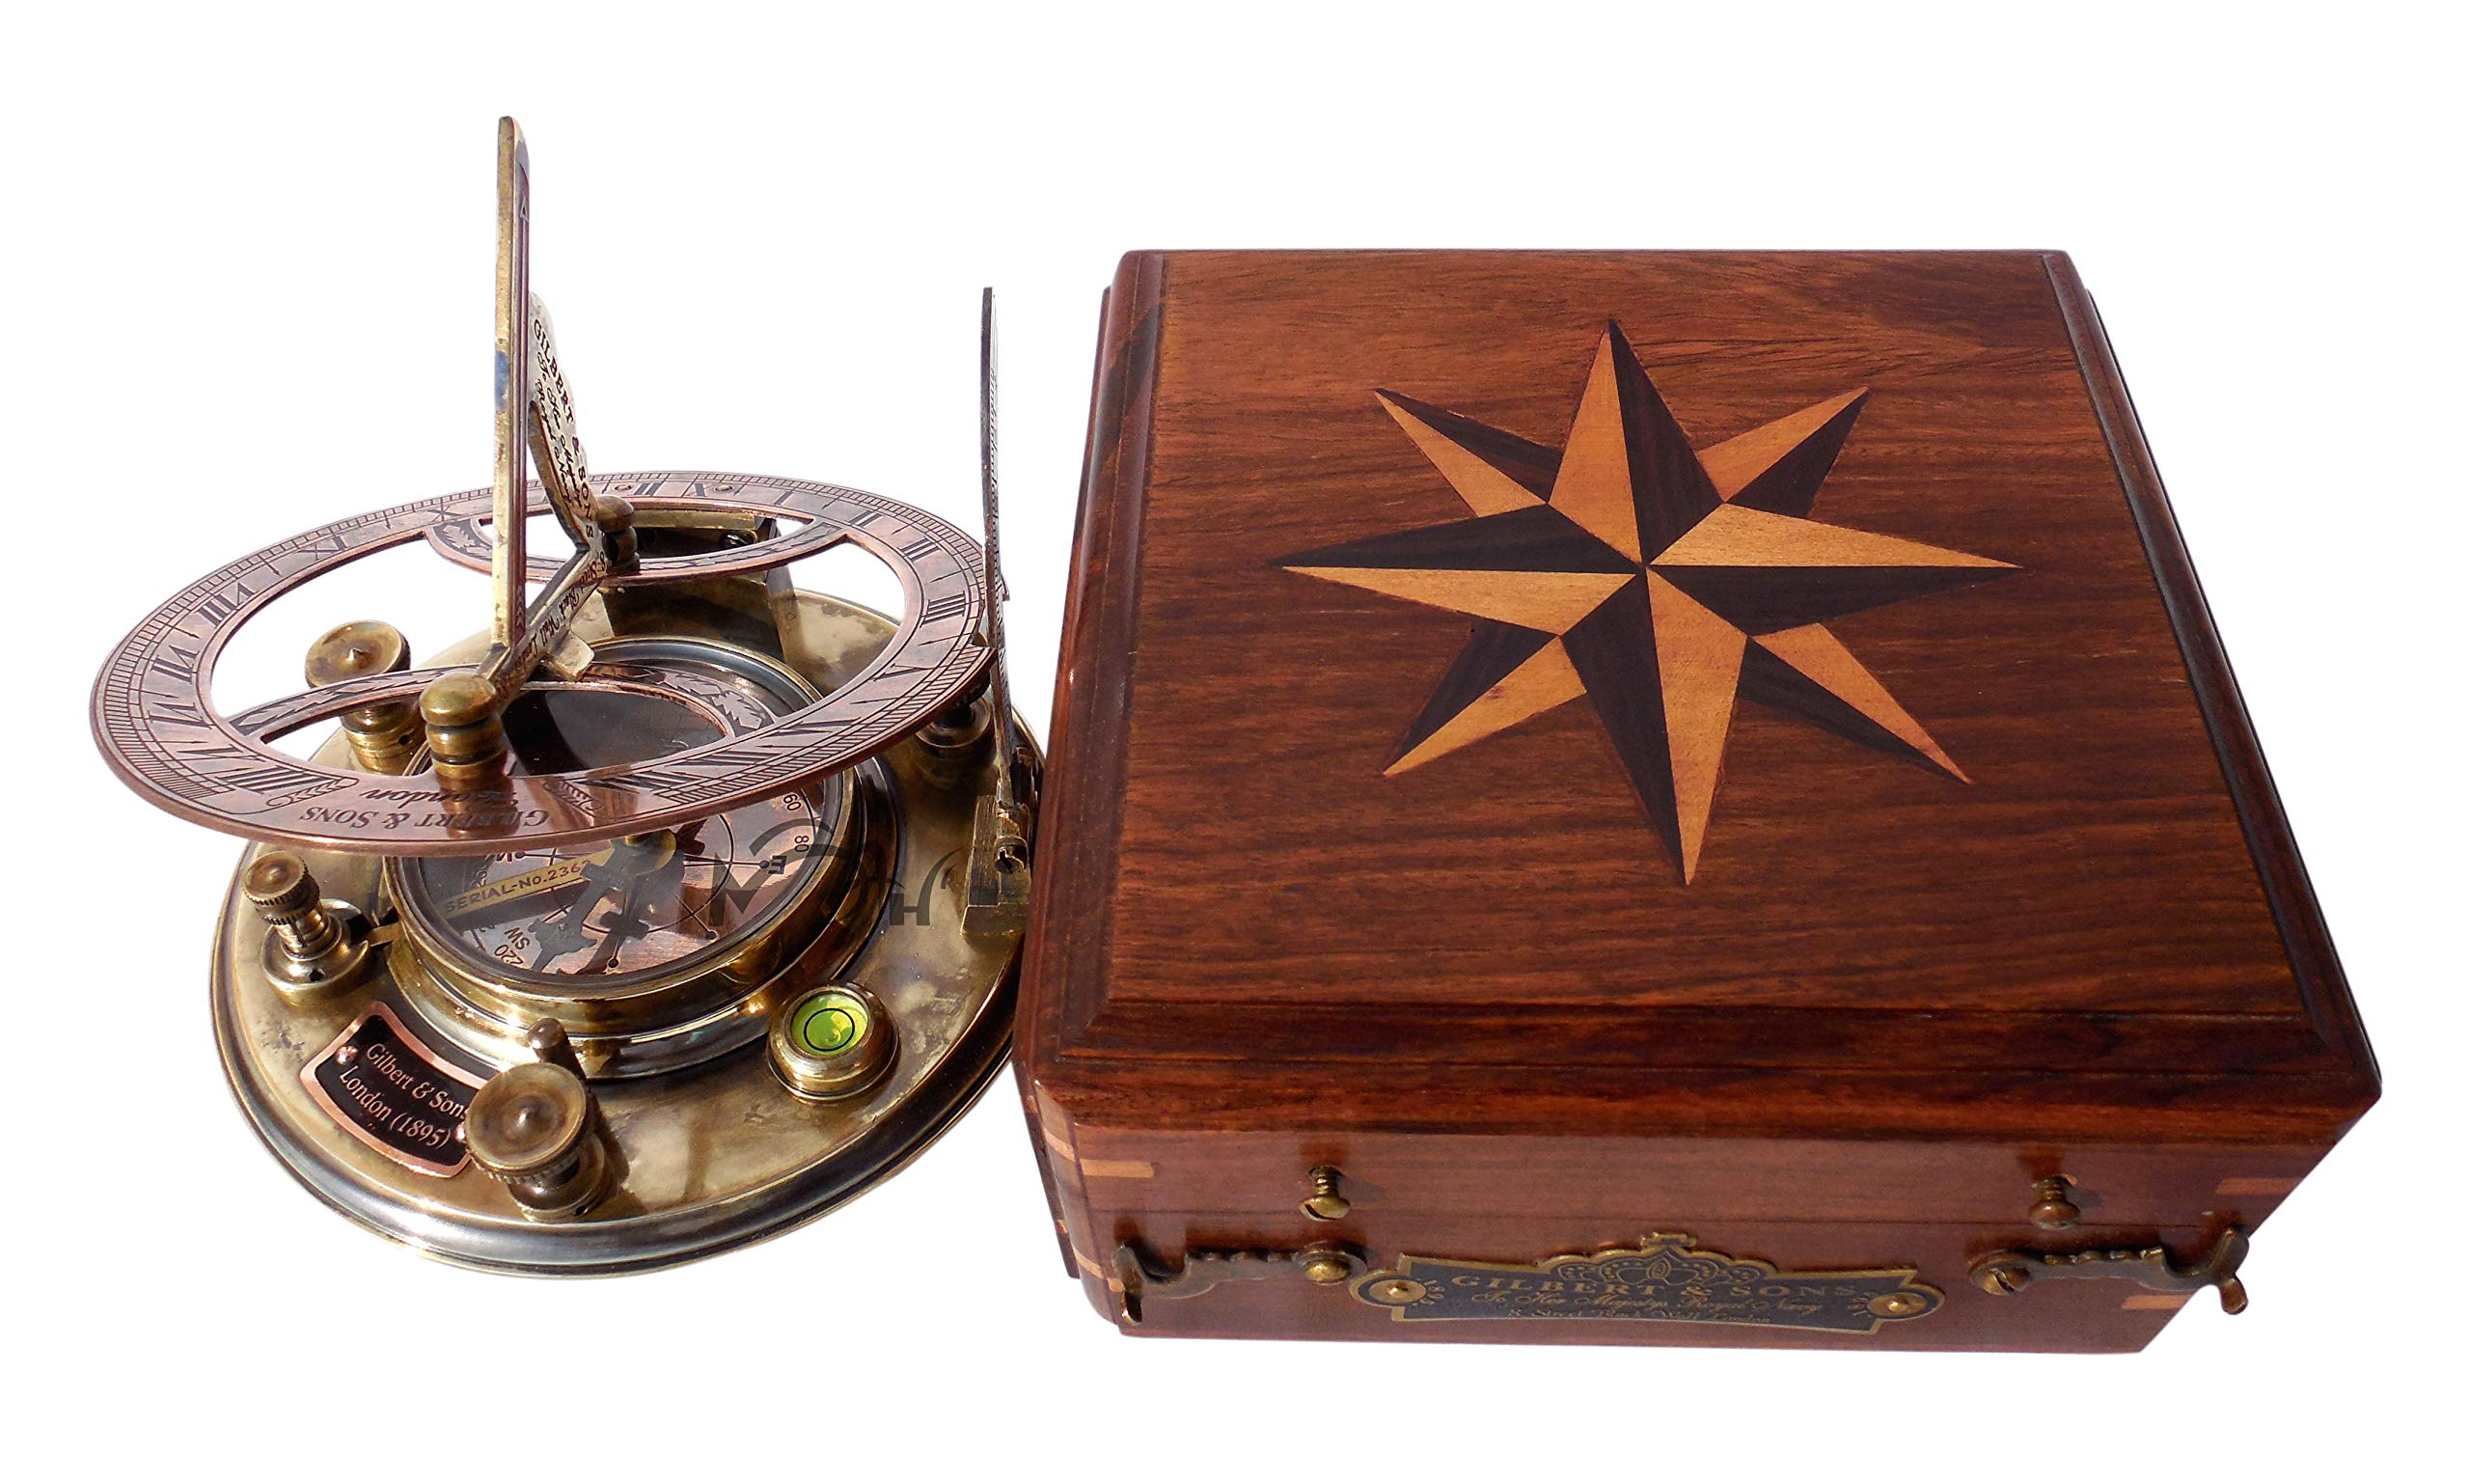 MAH Top Grade 5 Inch Perfectly Calibrated Large Sundial Compass with Wooden Box. C-3050 by MAH